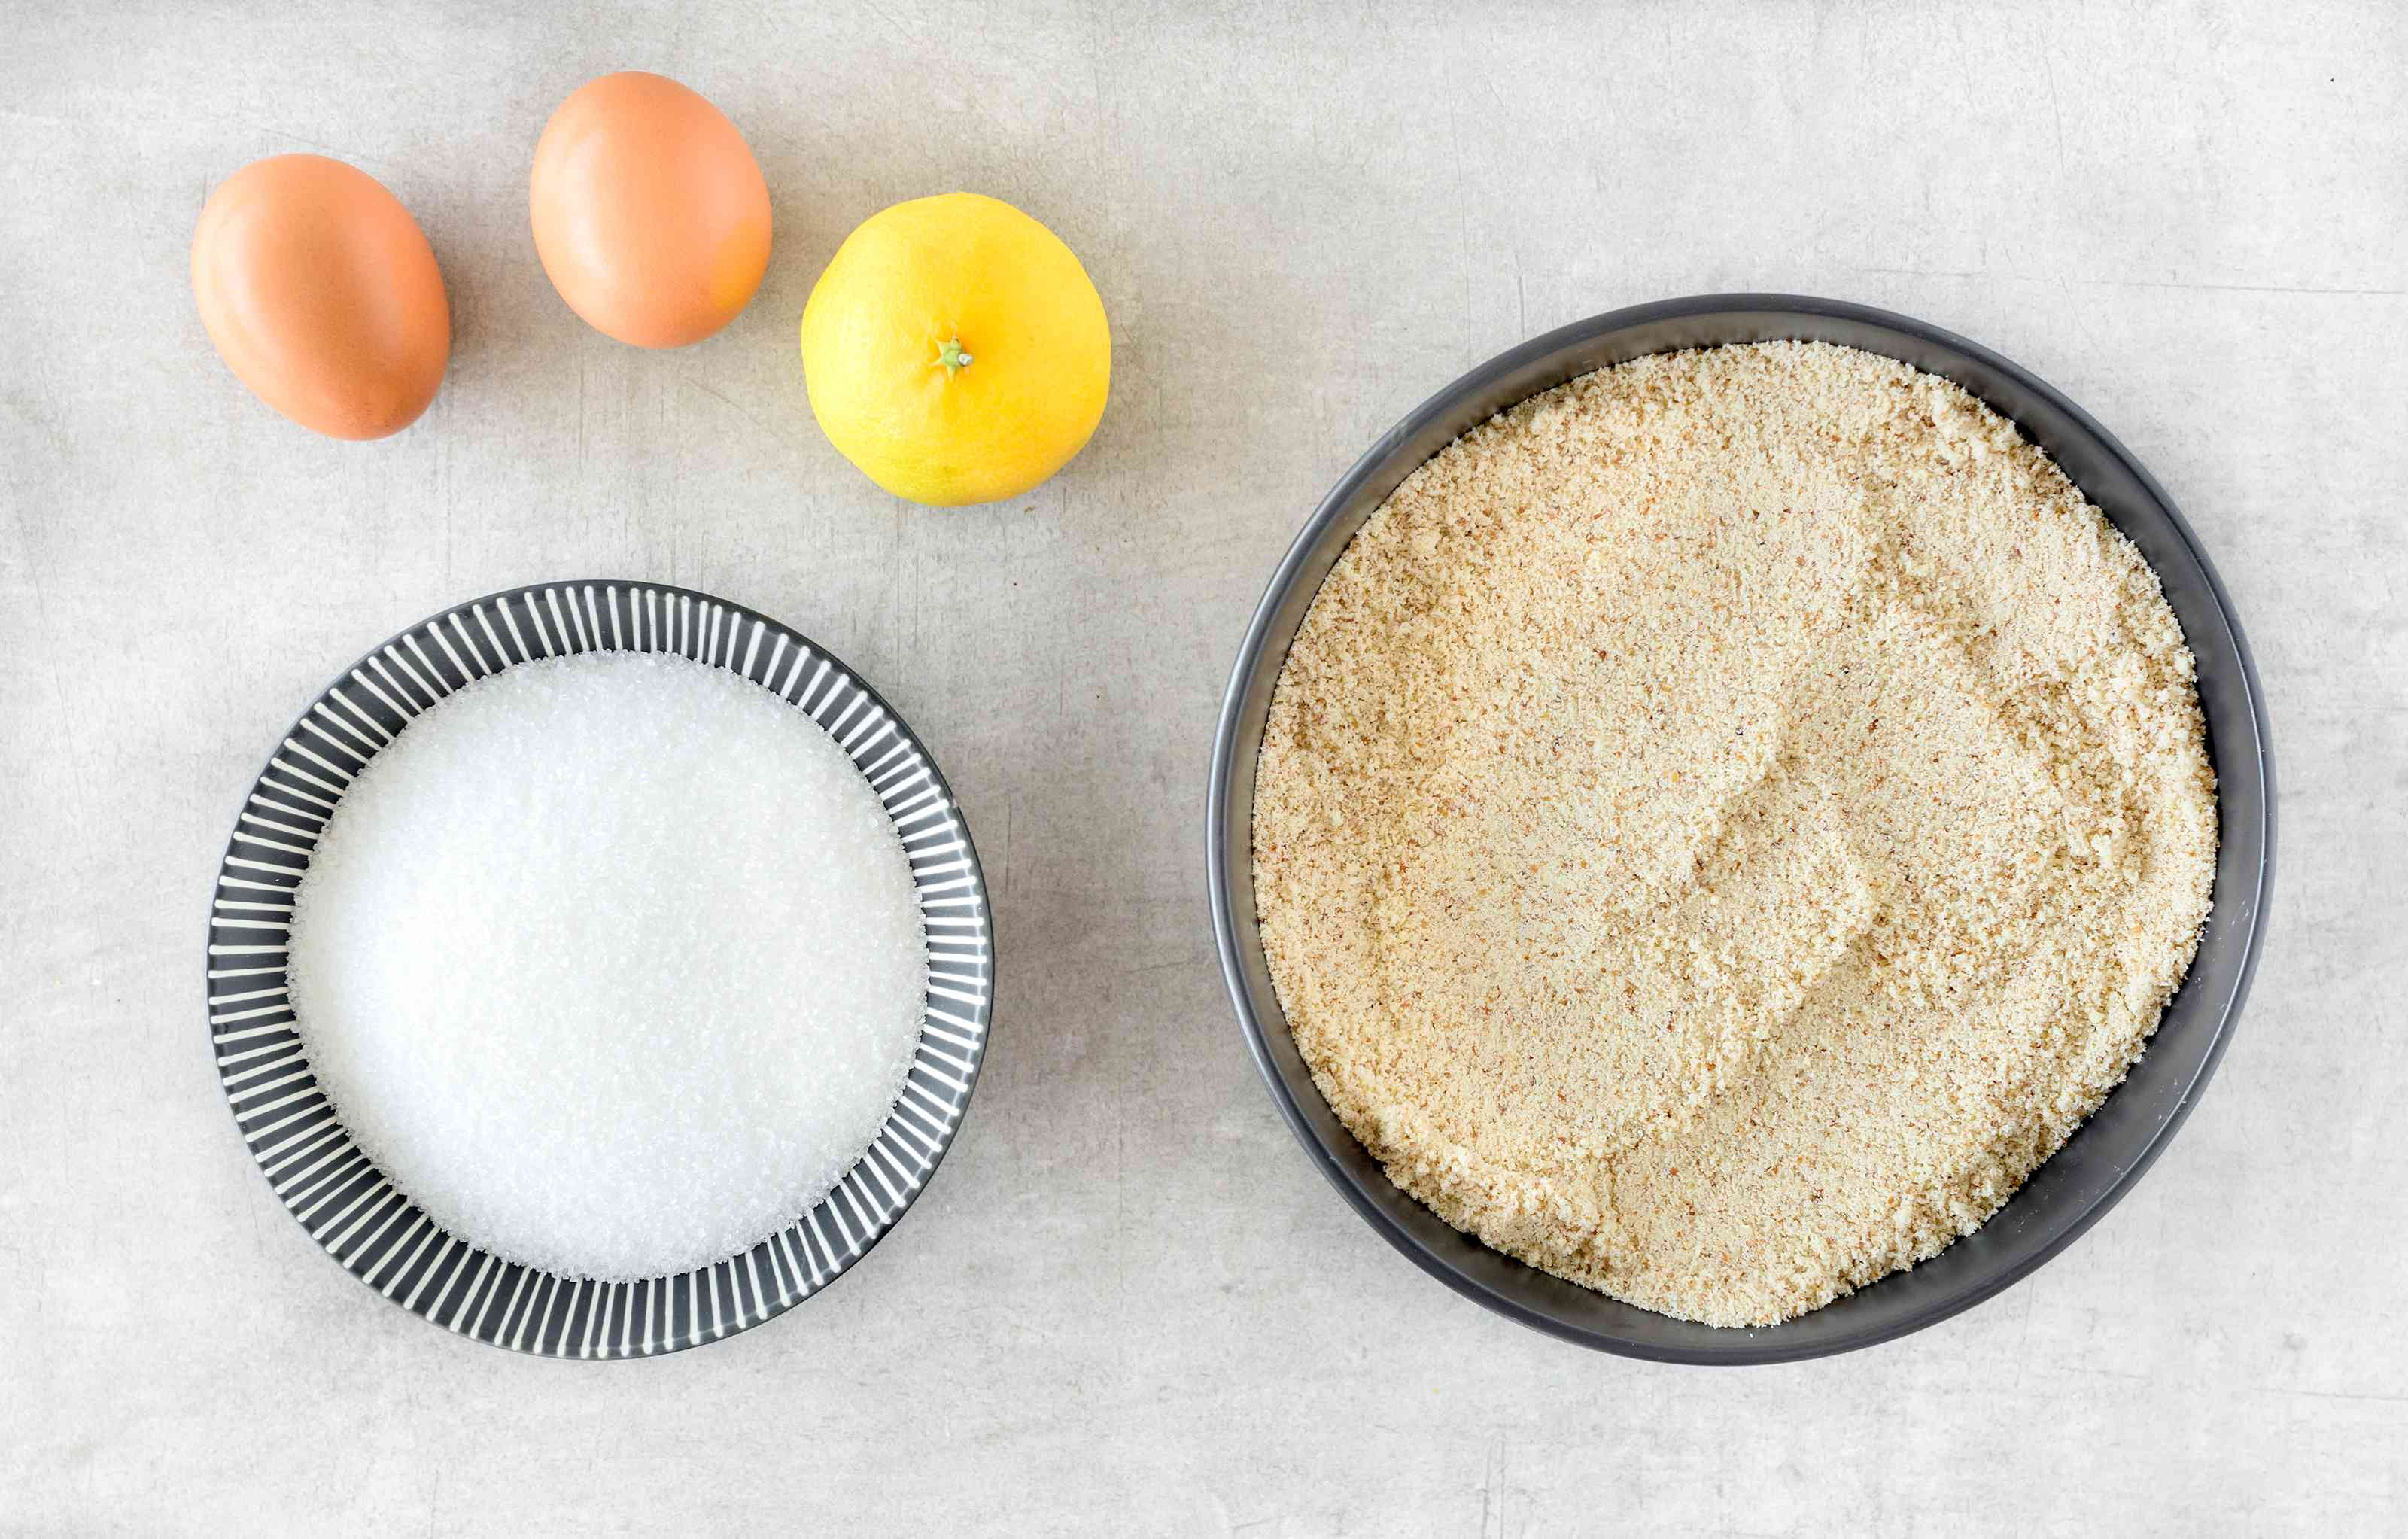 Ingredients for Spanish almond cookies